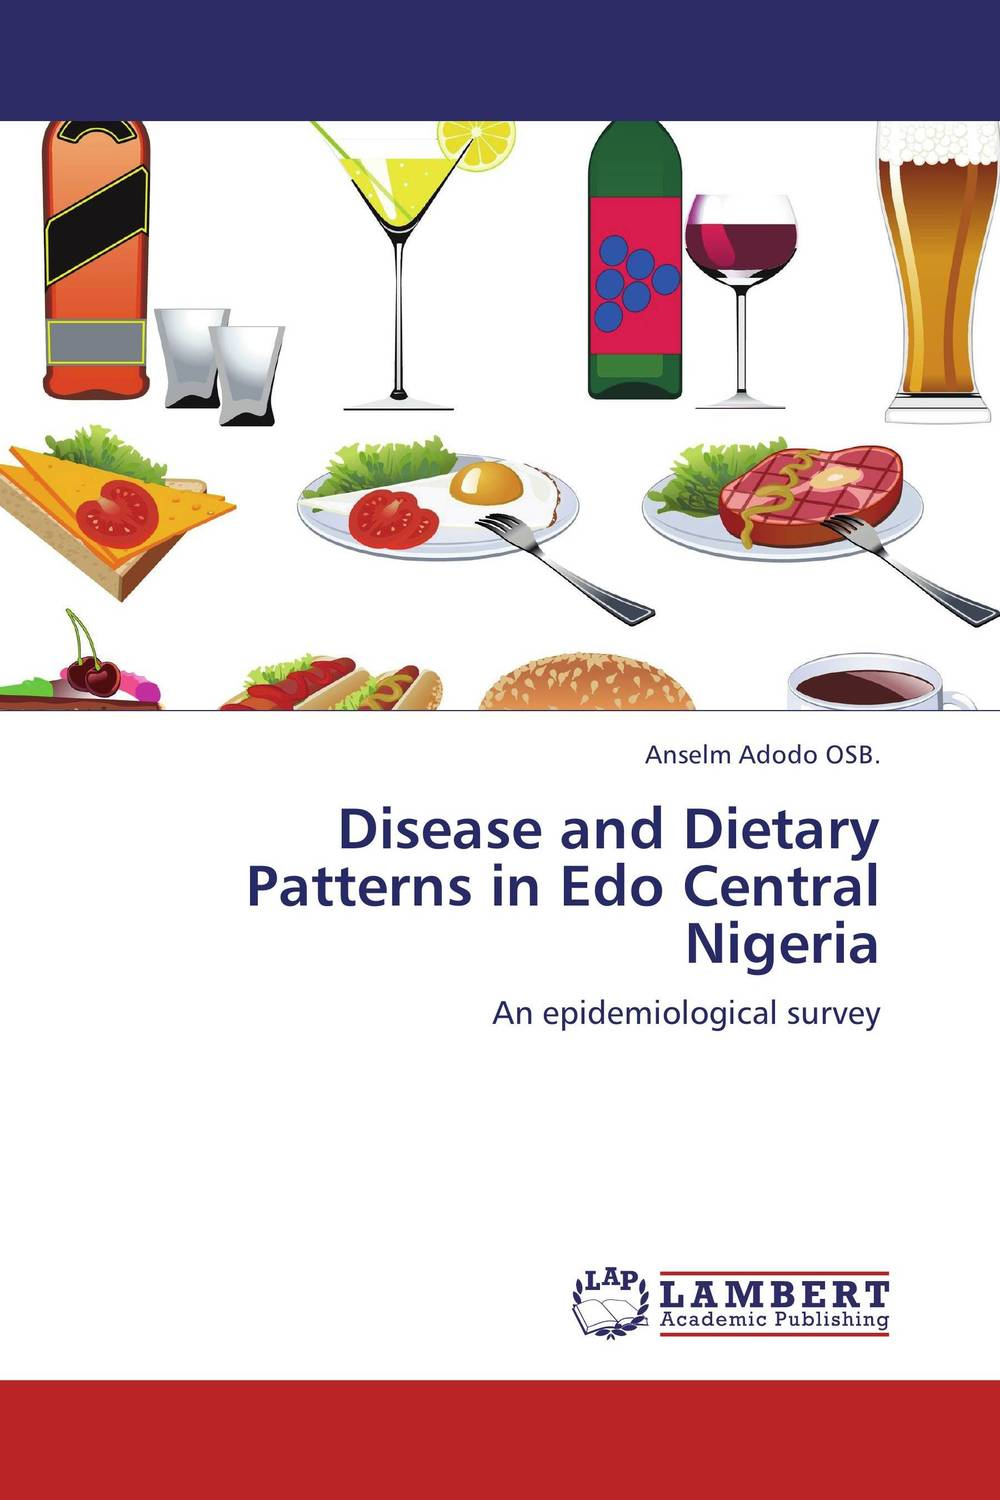 Disease and Dietary Patterns in Edo Central Nigeria dietary patterns and obesity risk among adults in mongolia